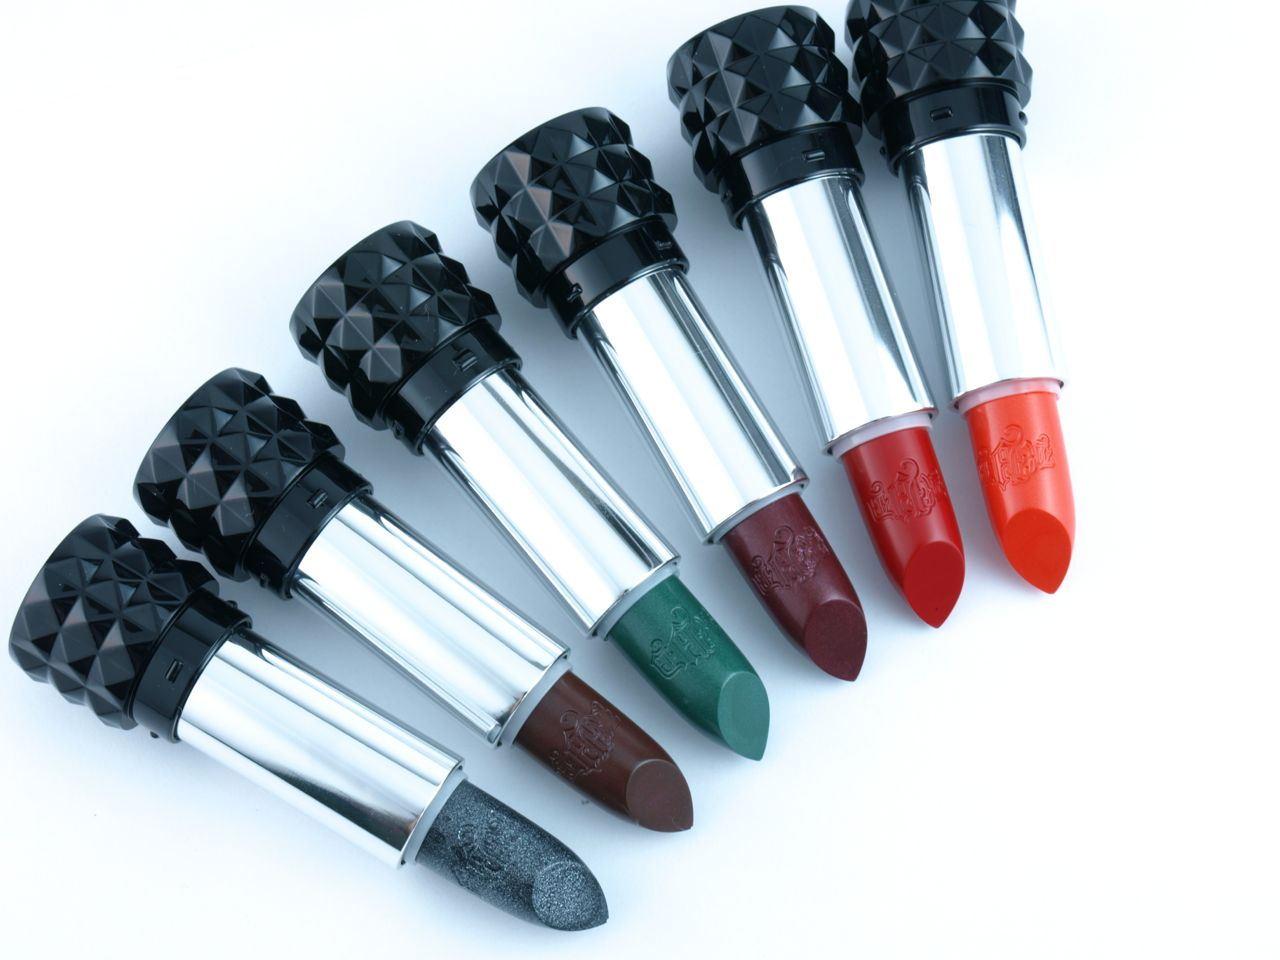 NEW Kat Von D Studded Kiss Lipstick for Fall 2015: Review and Swatches